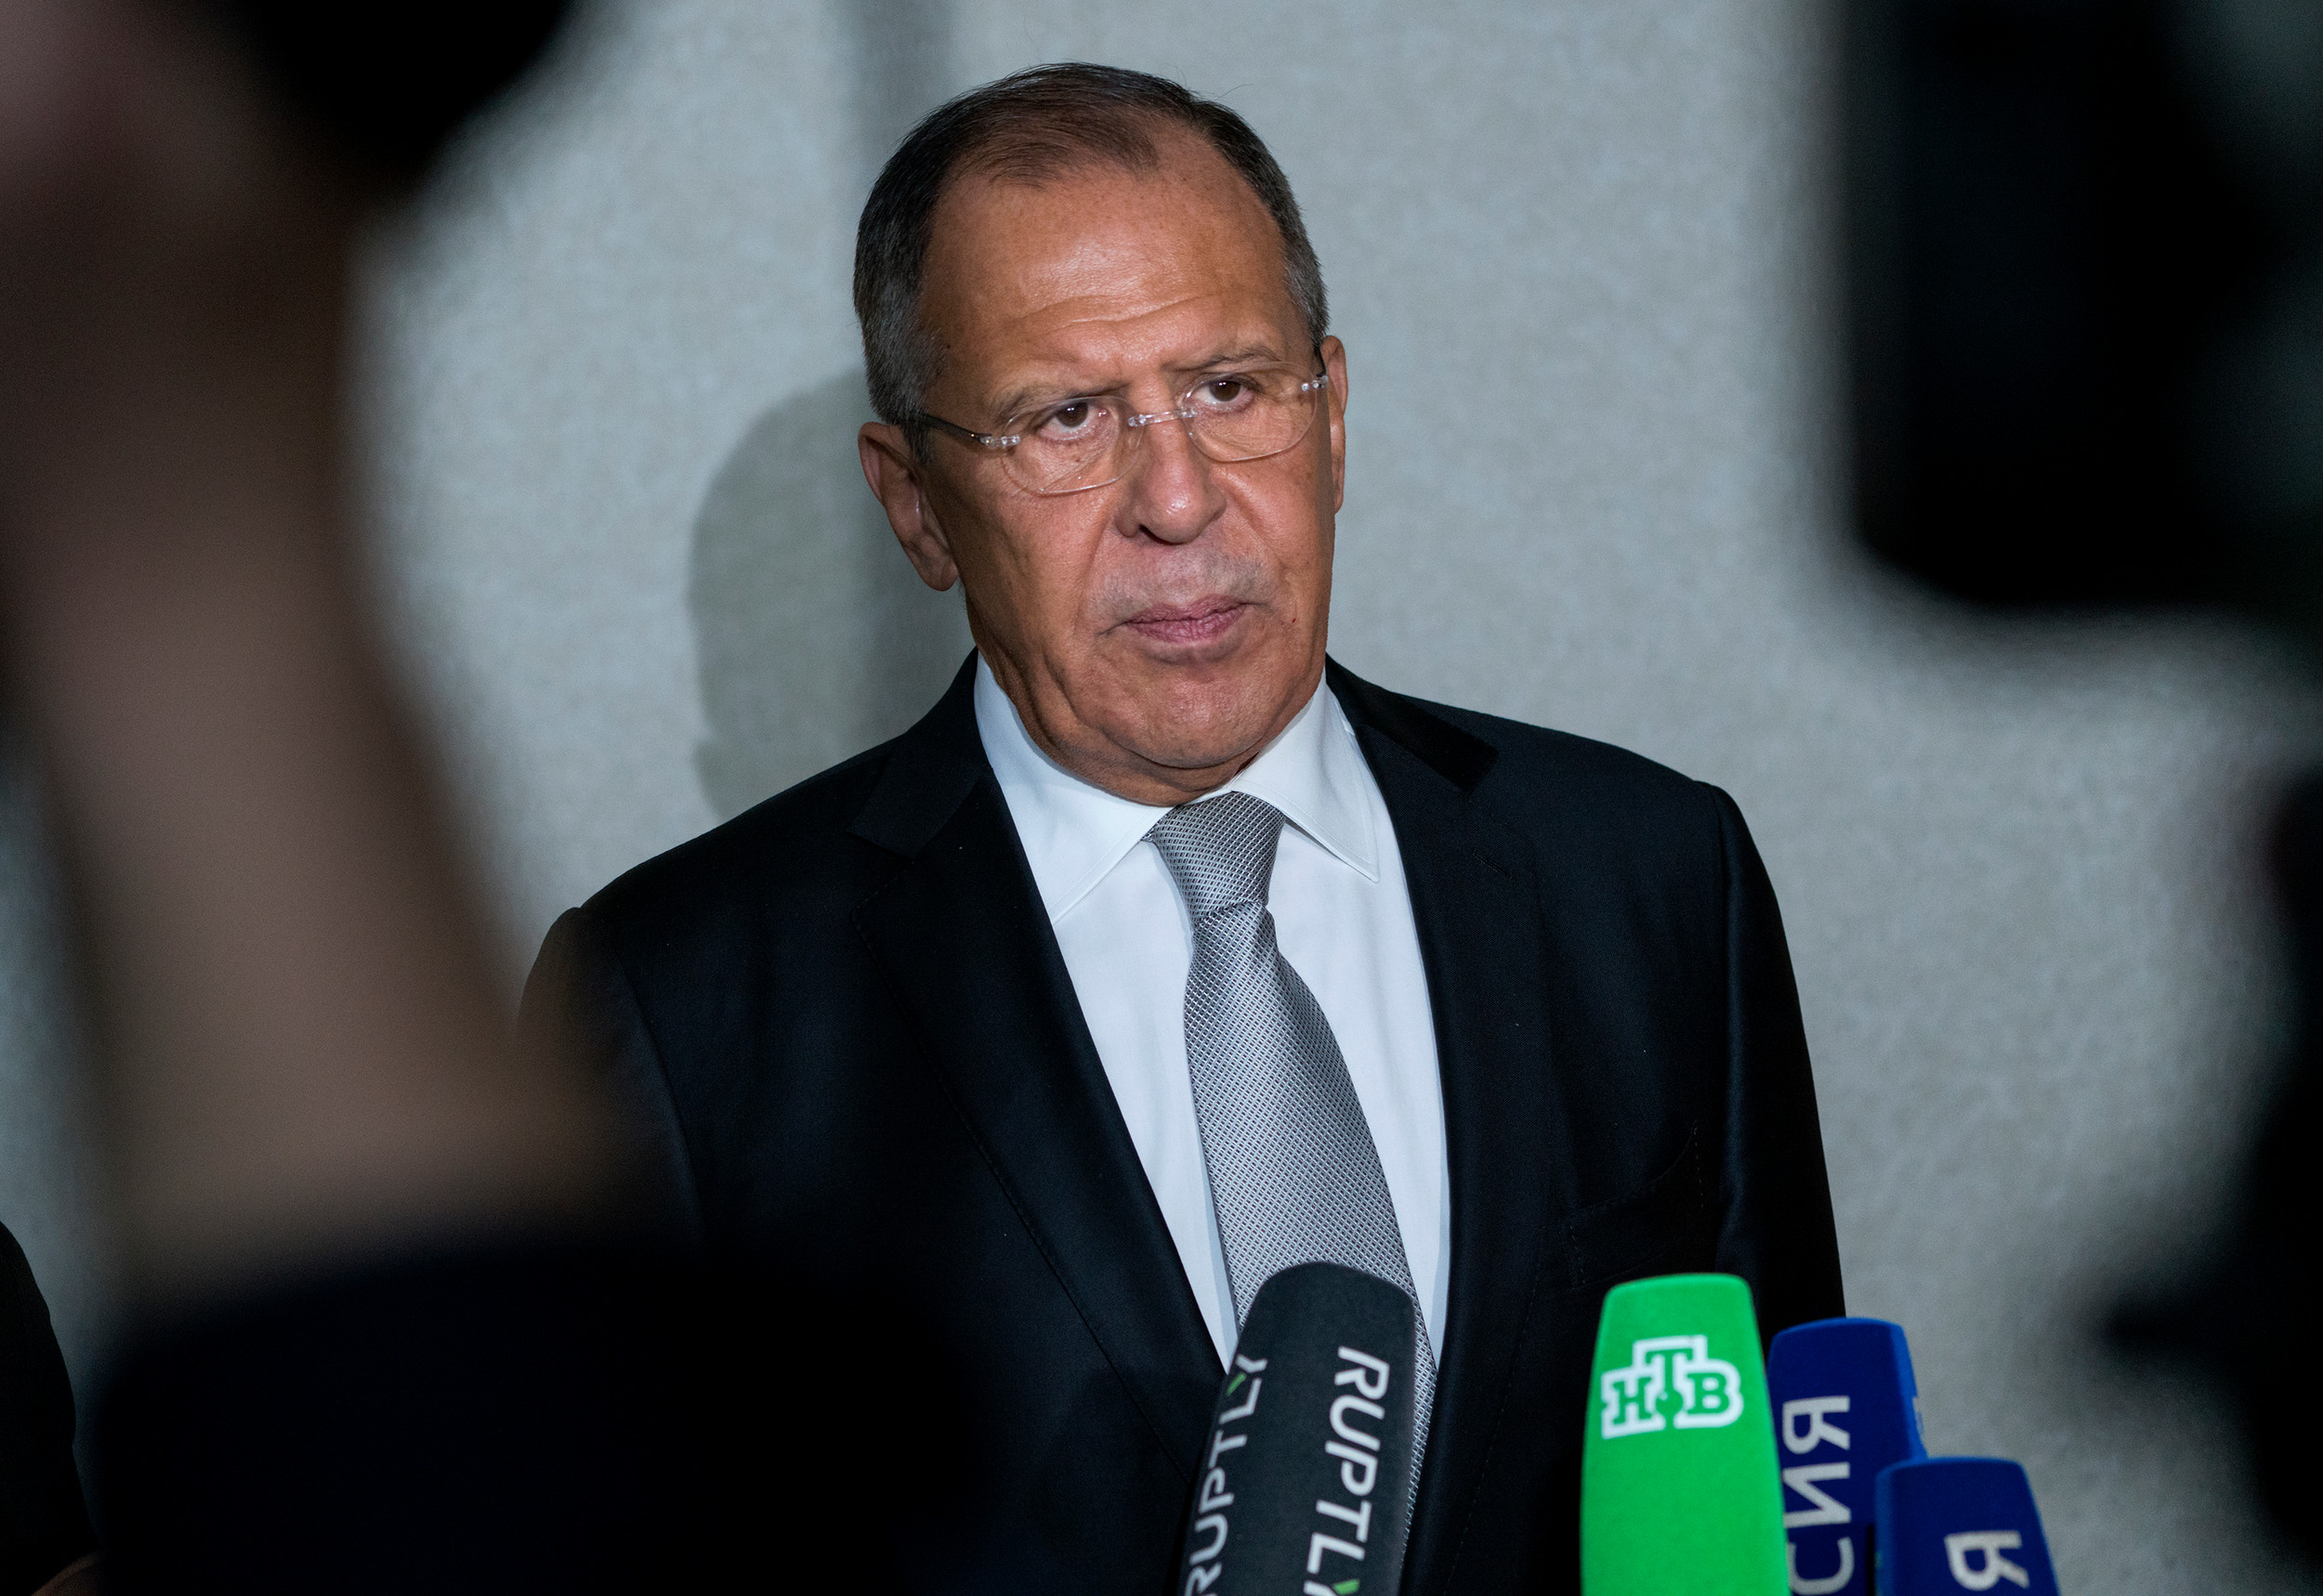 Russia's Lavrov Warns 'Military Hysteria' over North Korea Could Lead To Disaster